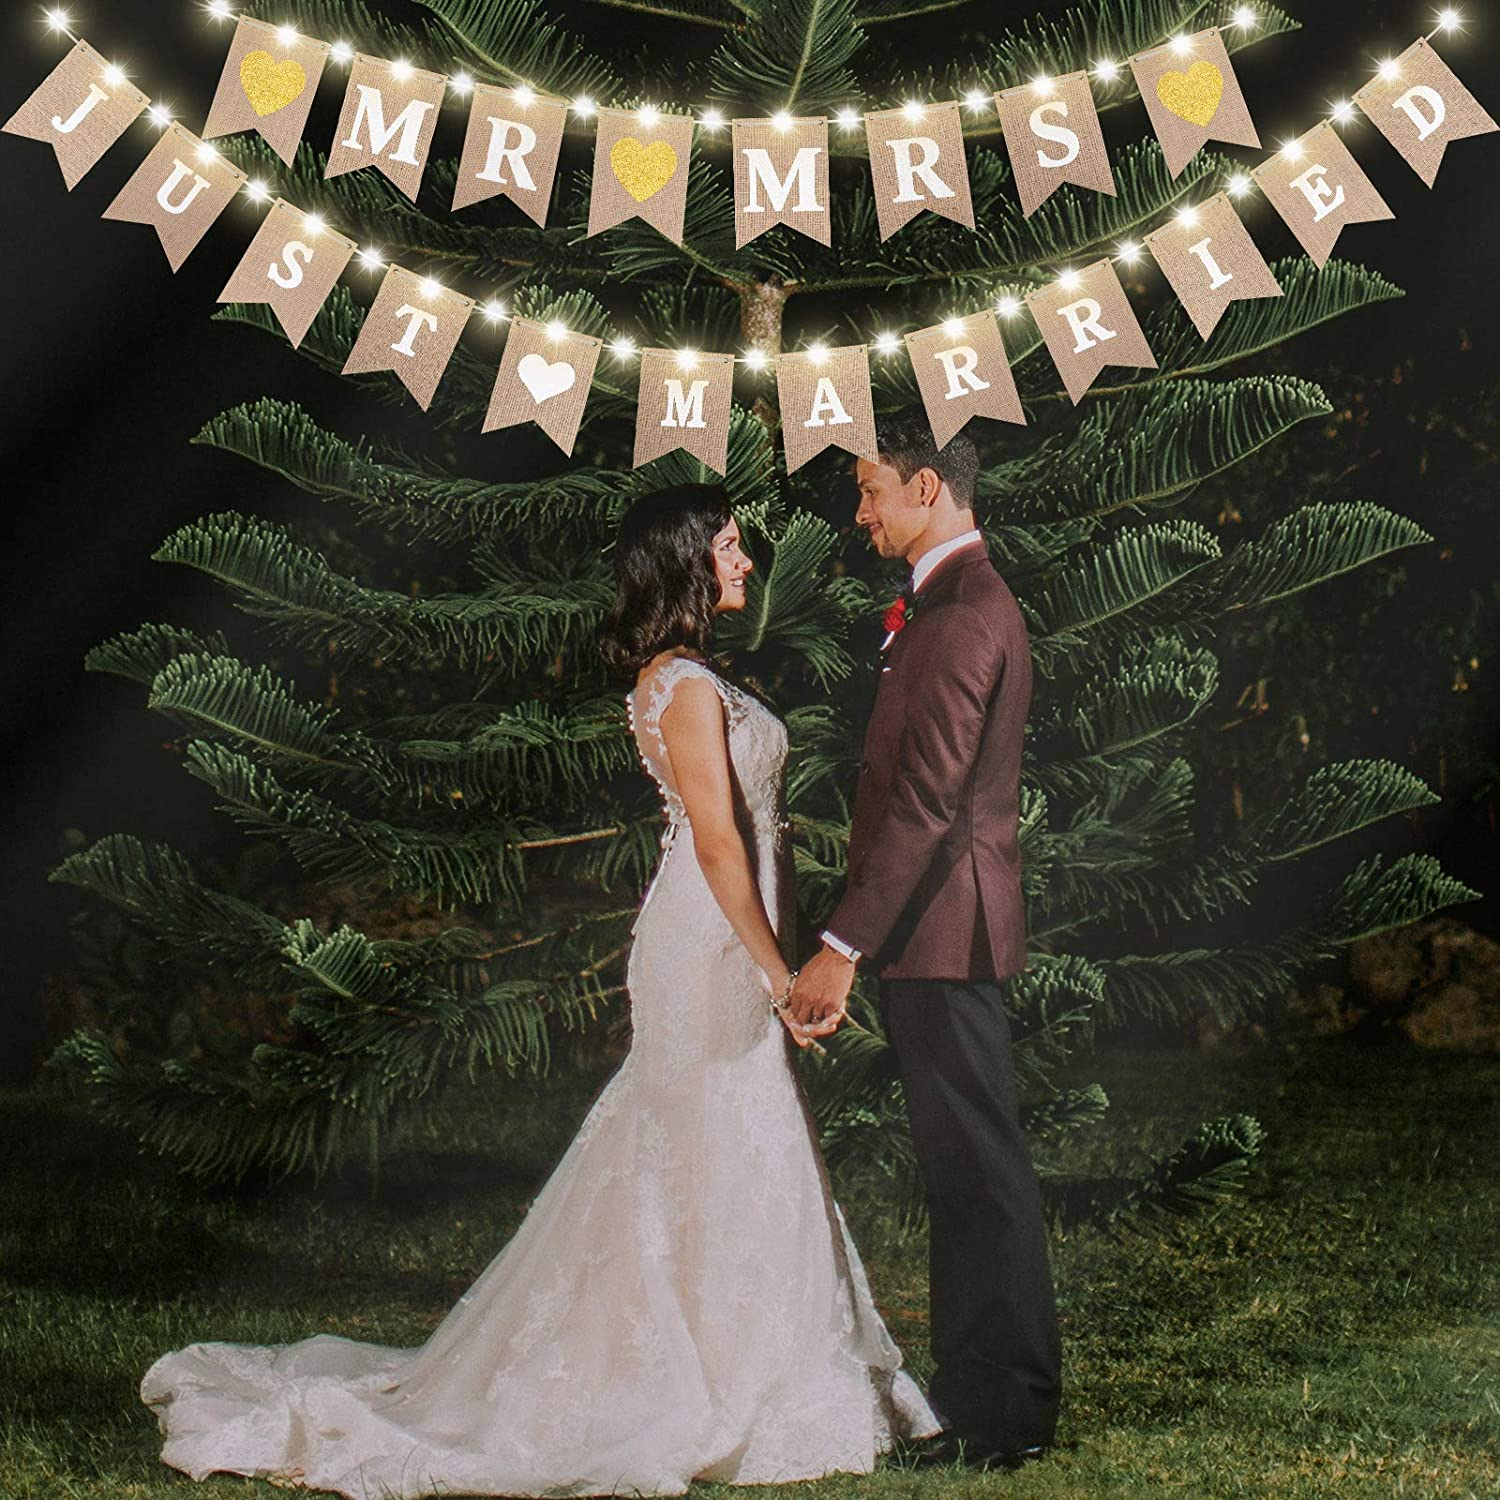 Mr and Mrs Just Married Burlap Banner, Wedding Bunting Banner with LED Fairy String Light 8 Flicker Mode, Hanging Sign Garland Pennant Photo Booth Props for Bridal Shower Wedding Engagement Party